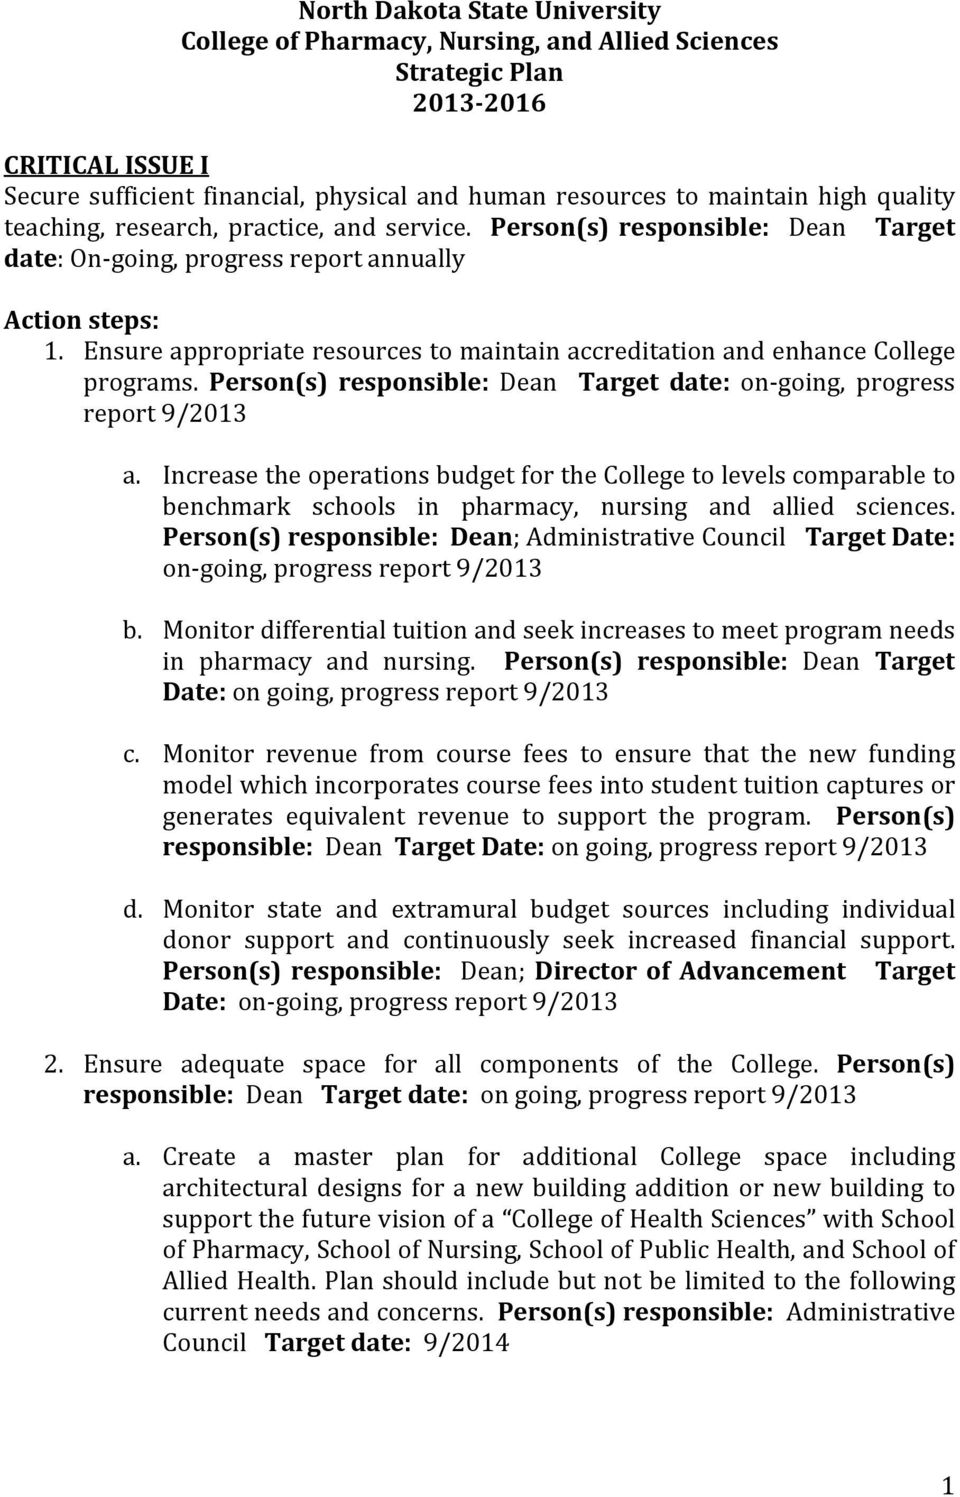 Ensure appropriate resources to maintain accreditation and enhance College programs. Person(s) responsible: Dean Target date: on going, progress report 9/2013 a.